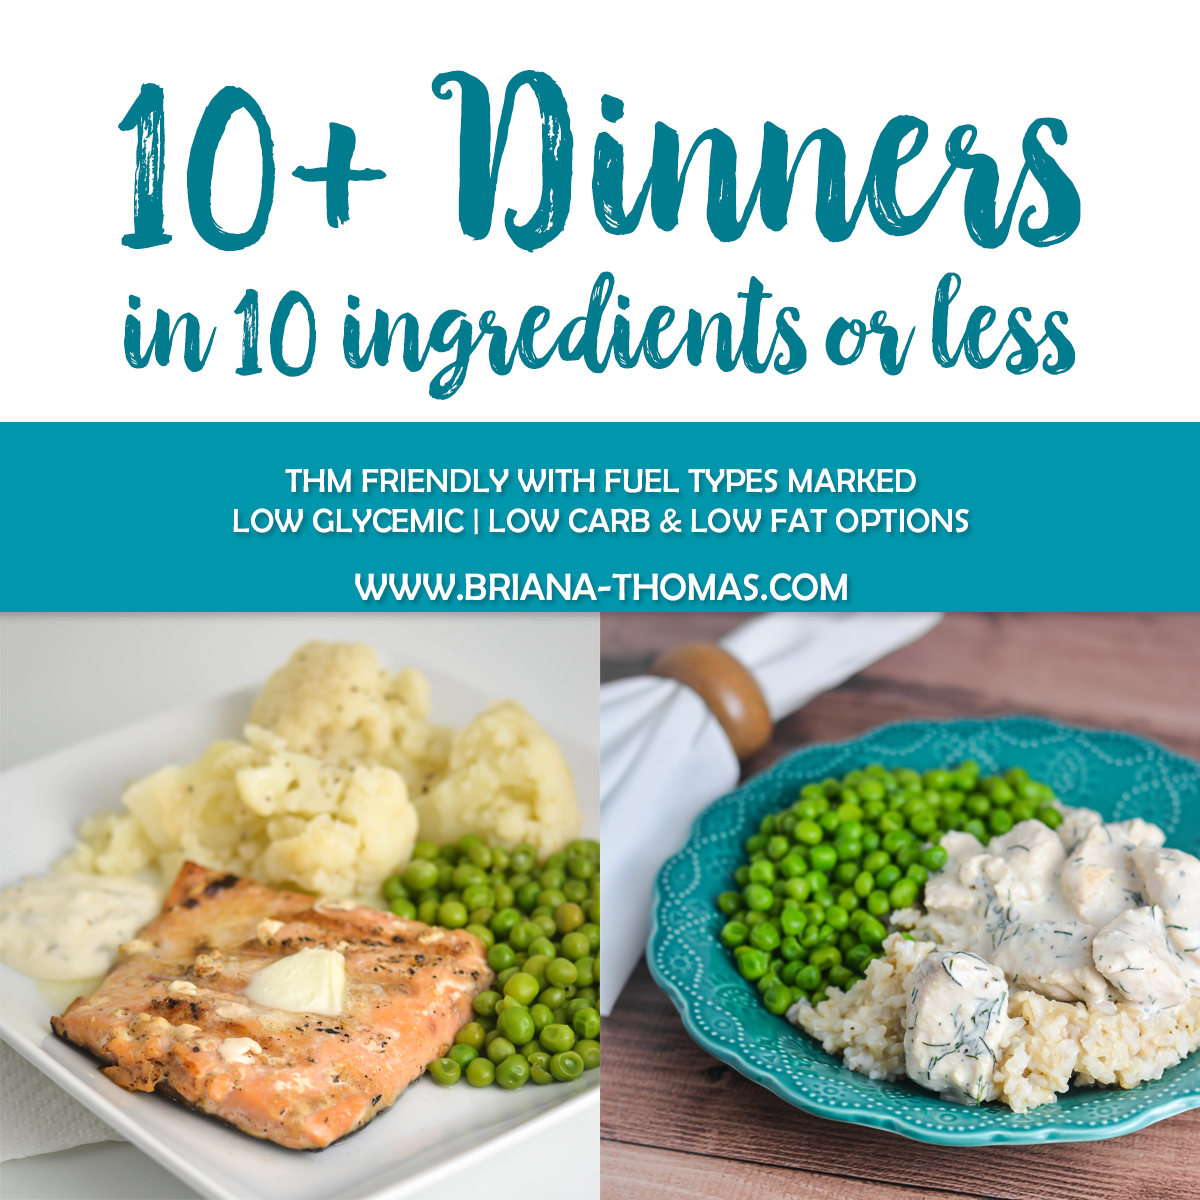 Check out this post for a list of THM-friendly dinners in 10 ingredients or less! You'll find plenty of quick, easy recipes to bookmark. Fuel types marked.